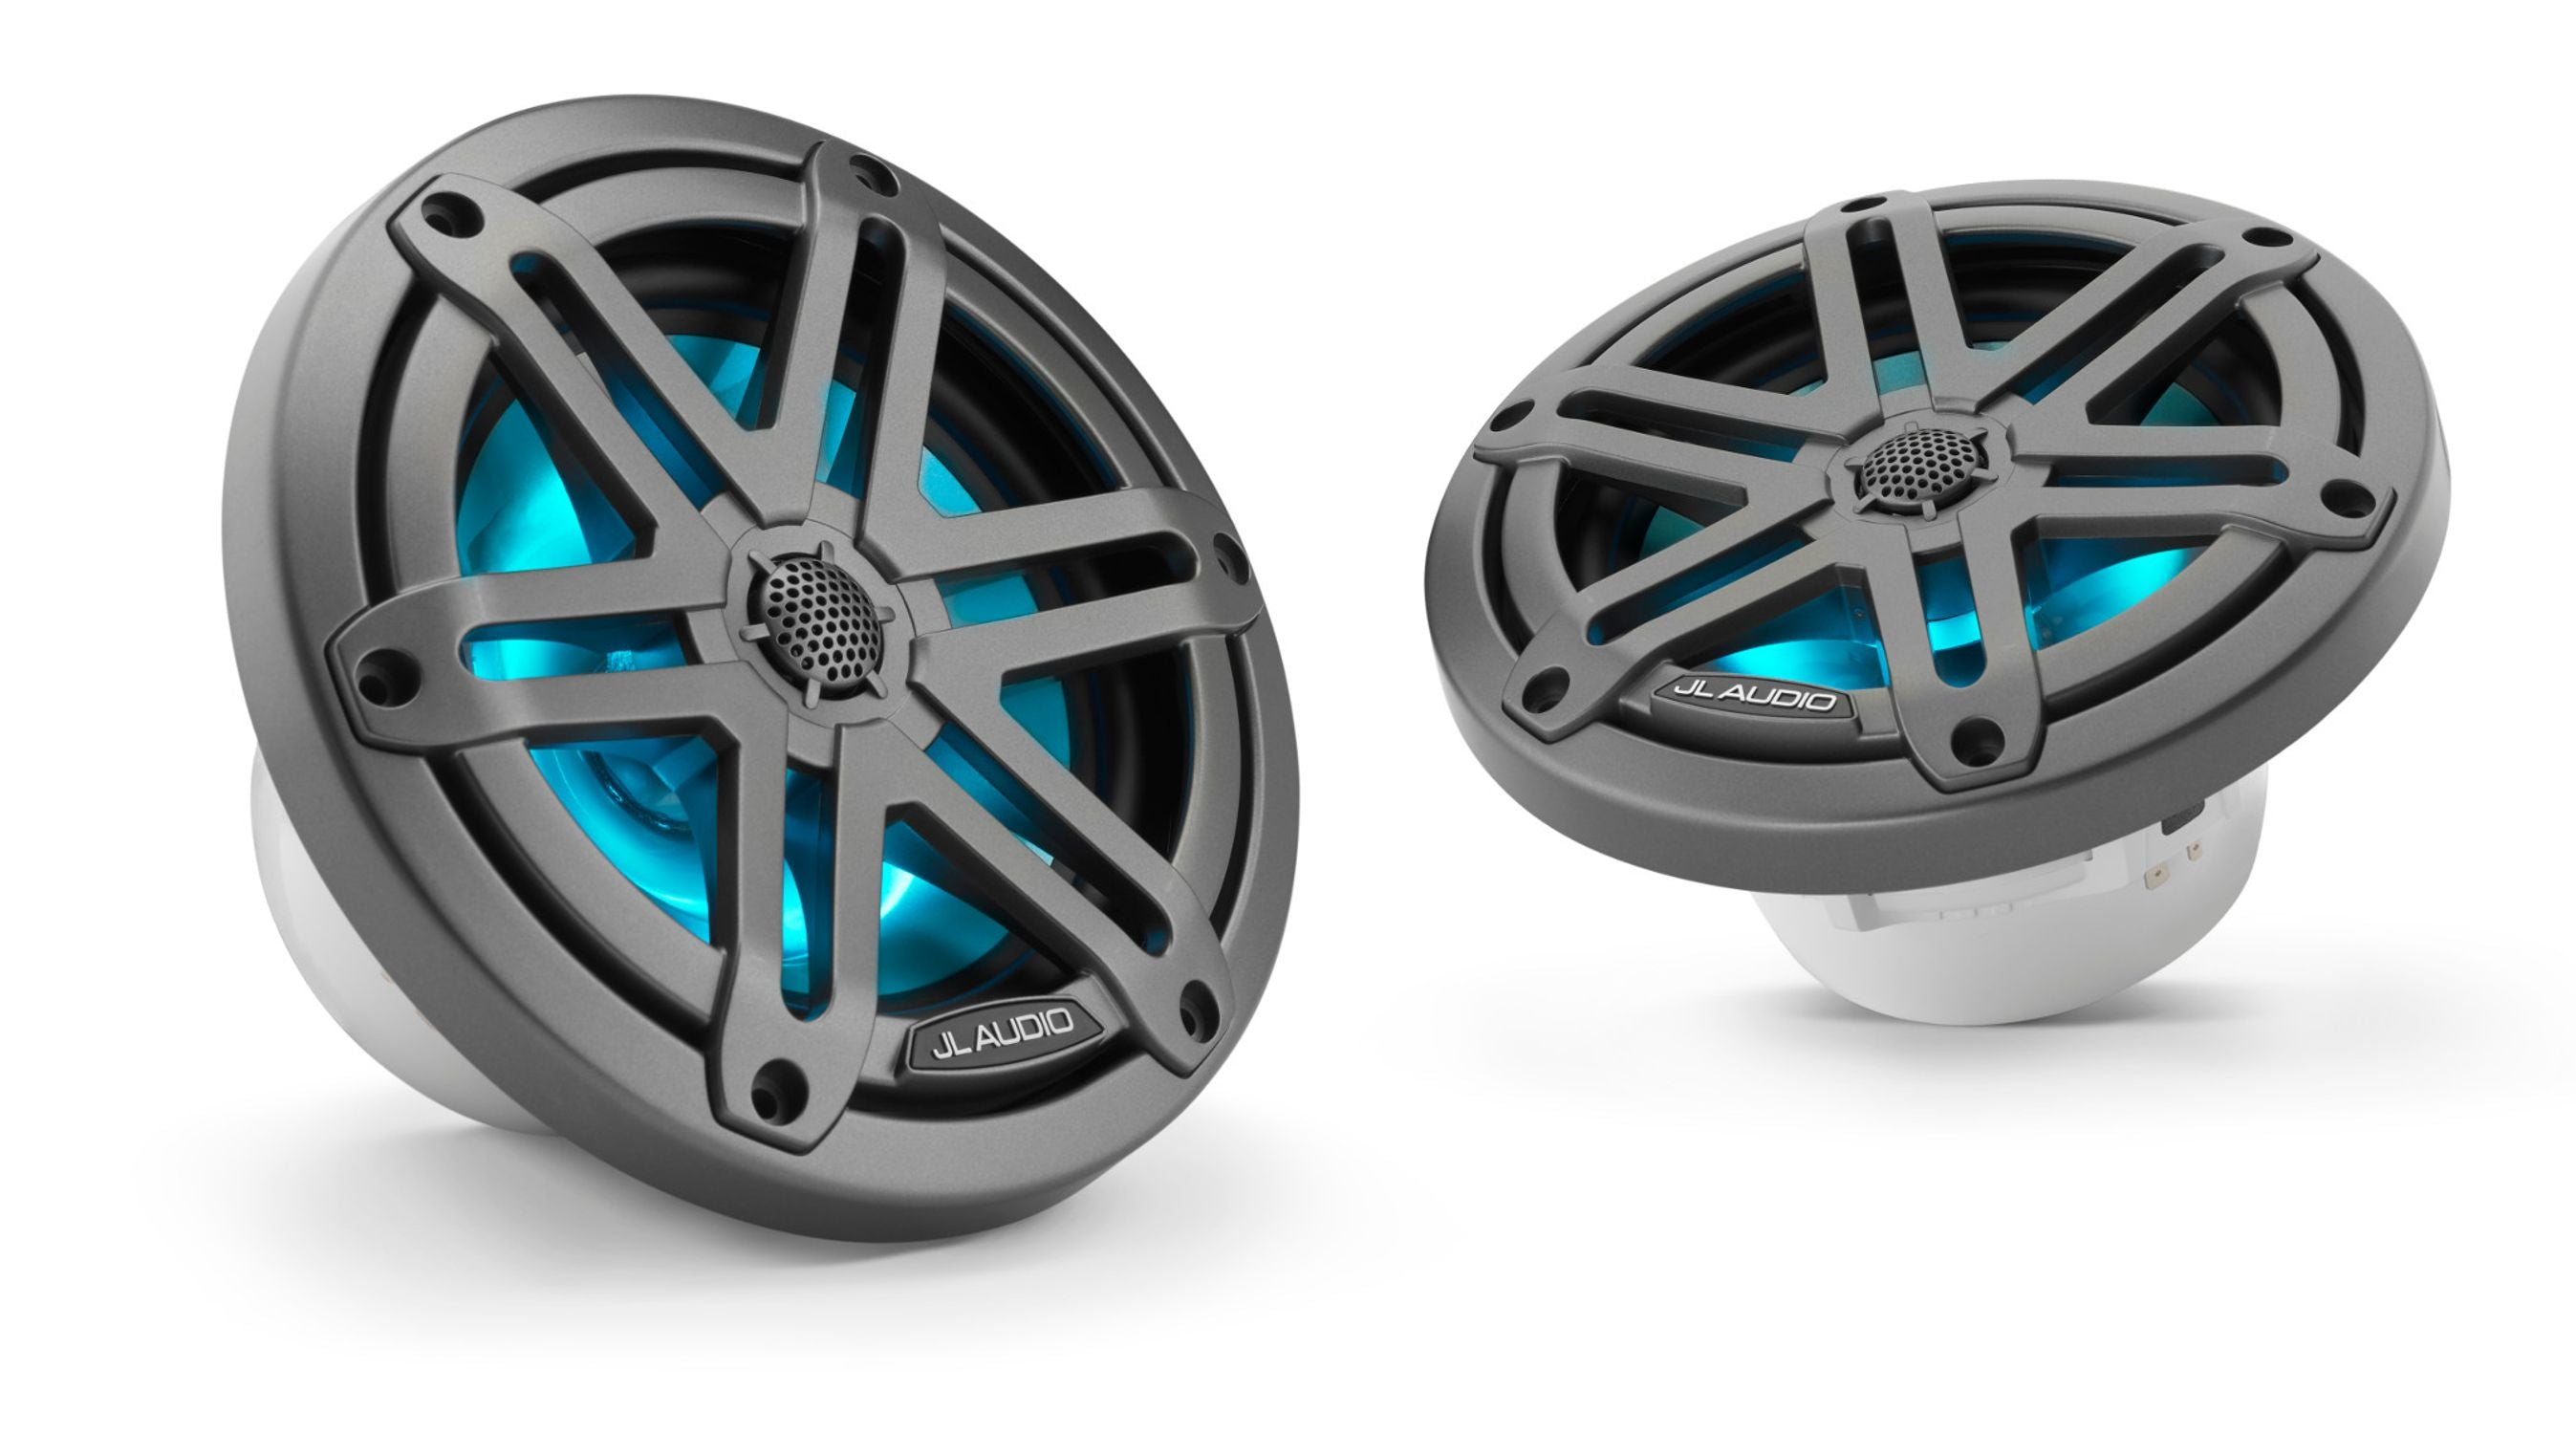 Pair of M3-650X-S-Gm-i Coaxial Speaker Lit with Aqua